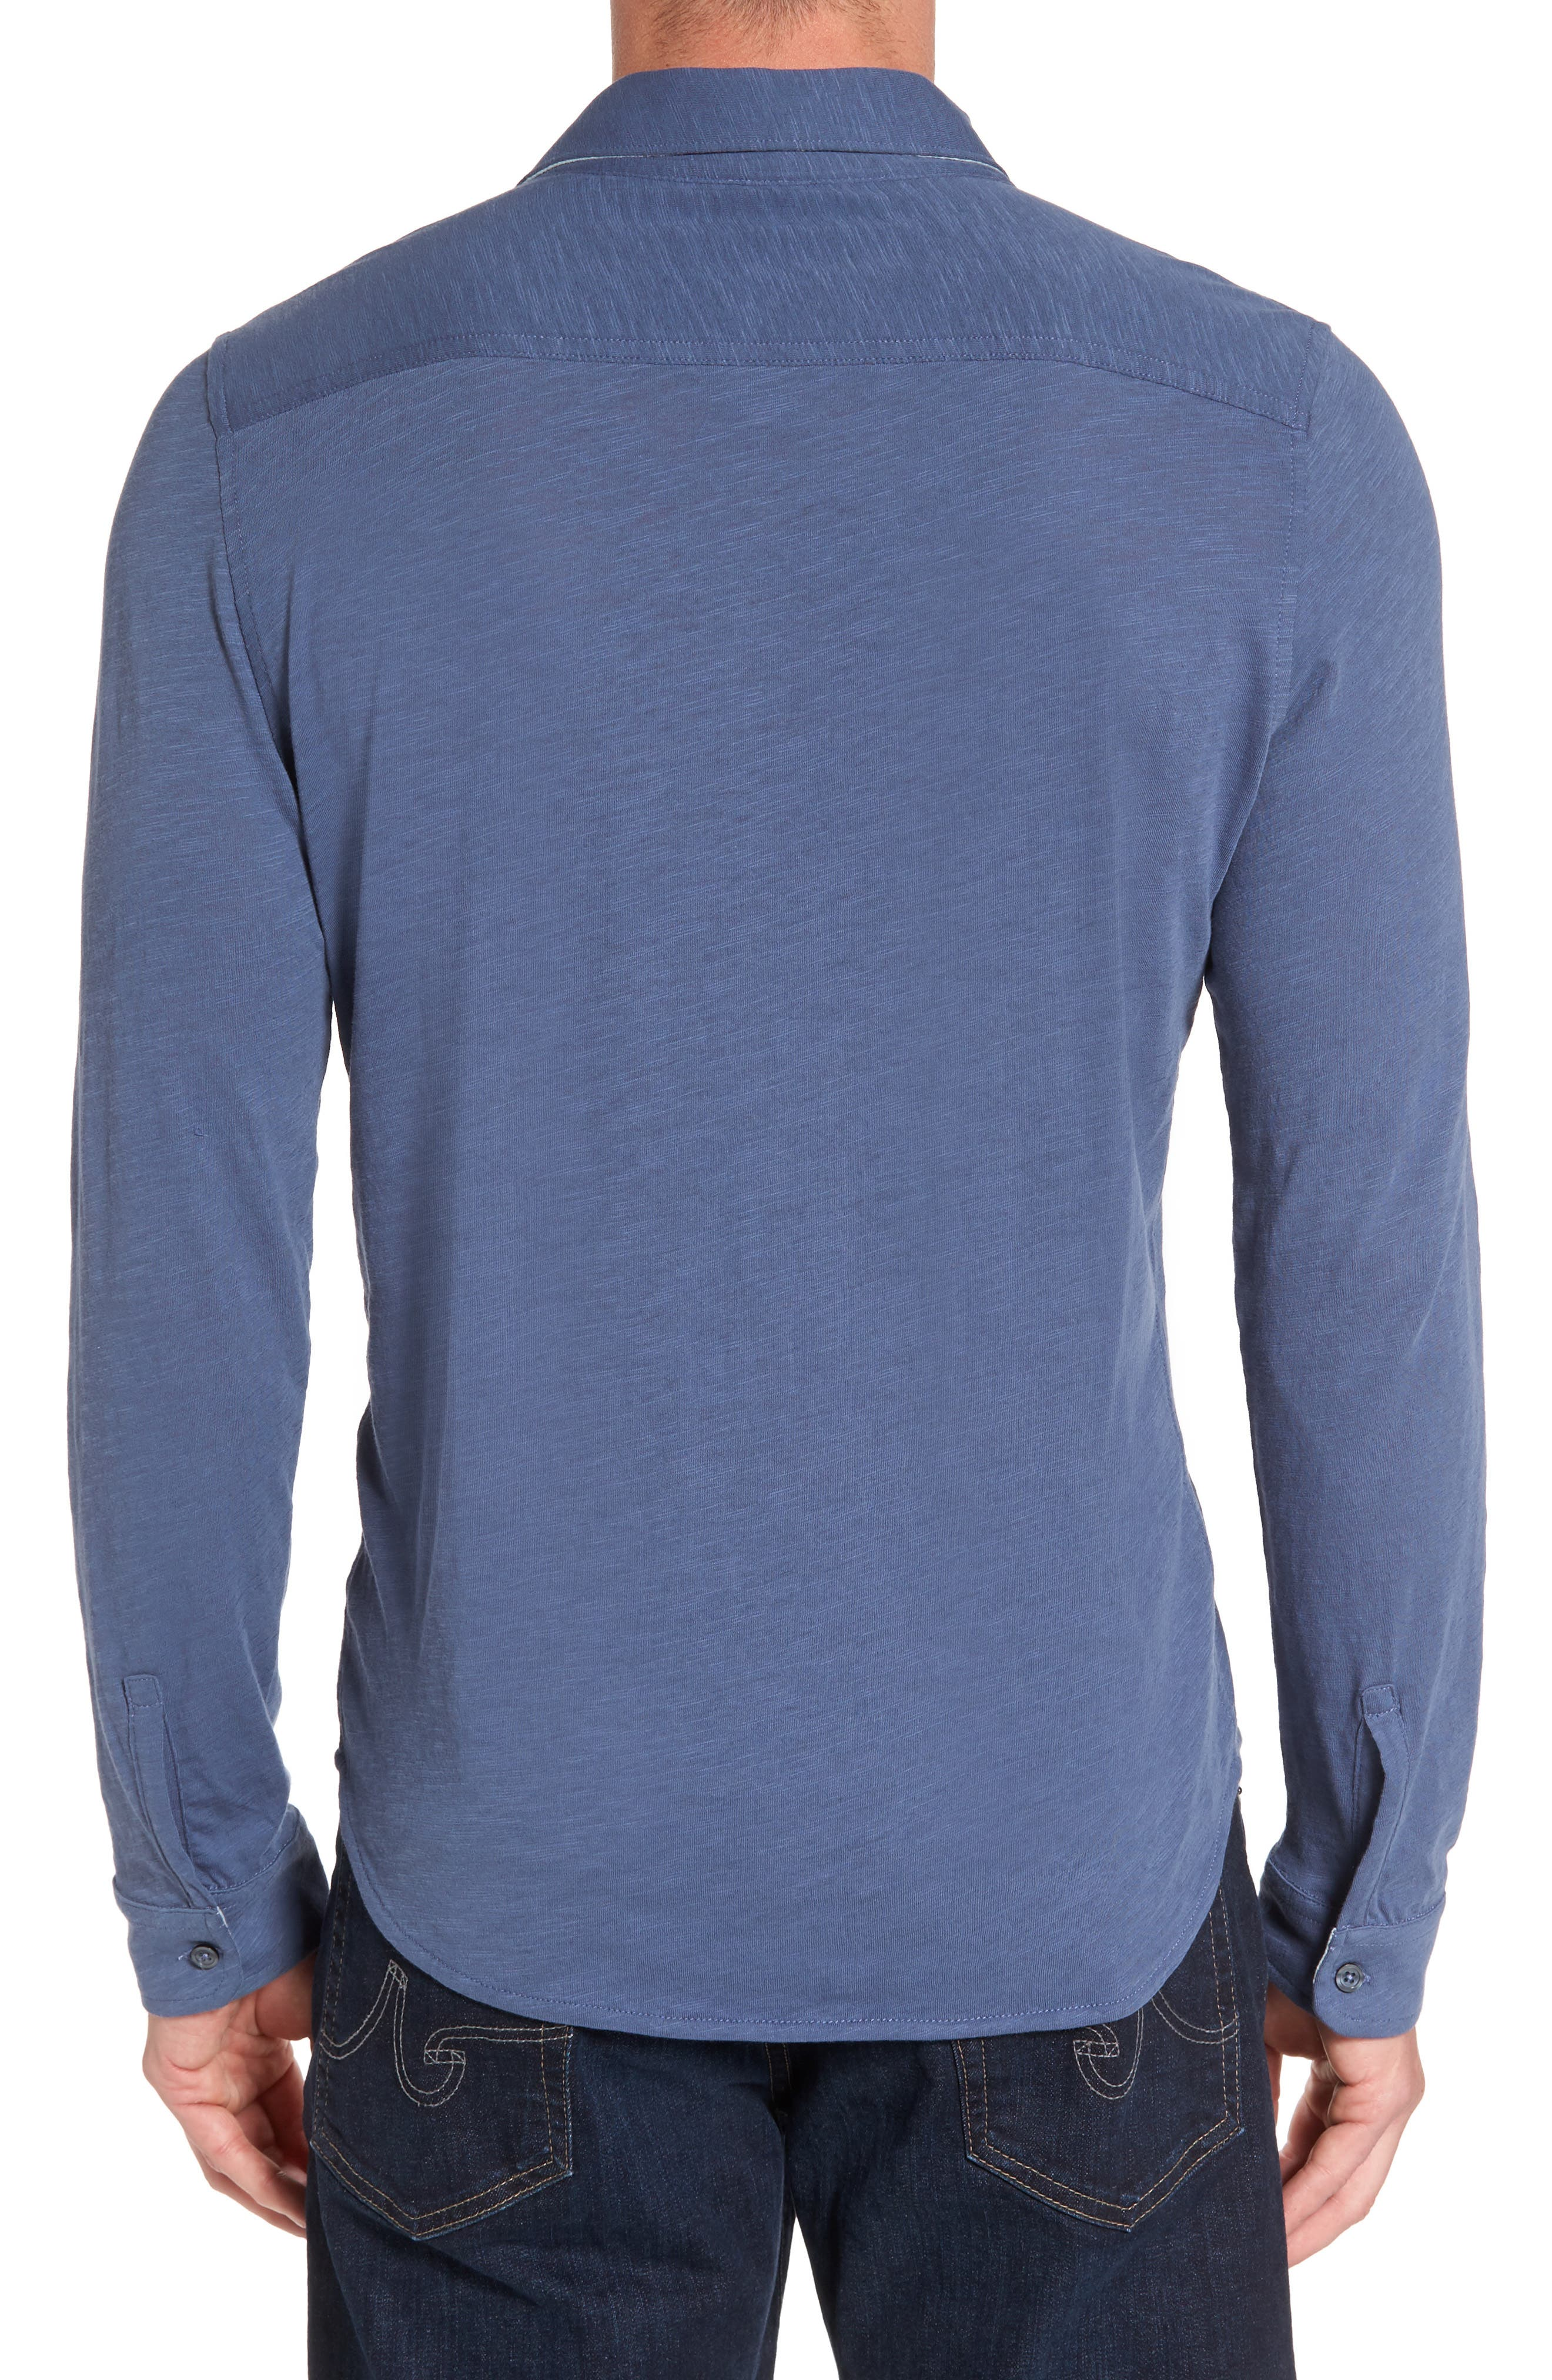 Alternate Image 2  - Zachary Prell Camara Trim Fit Knit Sport Shirt